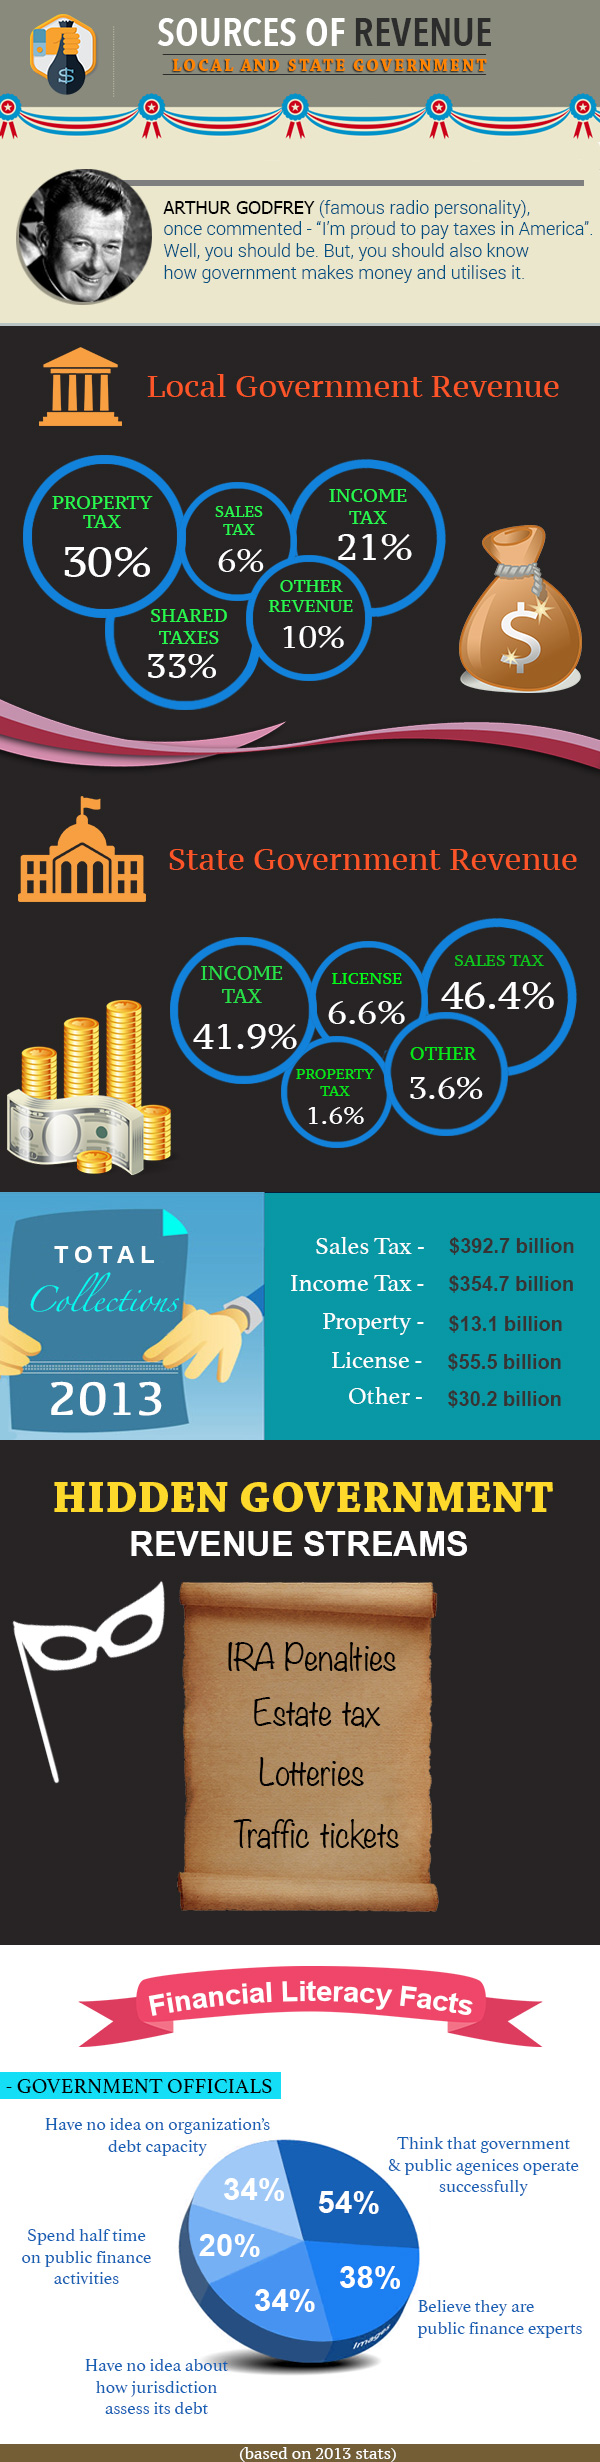 Hidden facts about sources of revenues - Local and state government